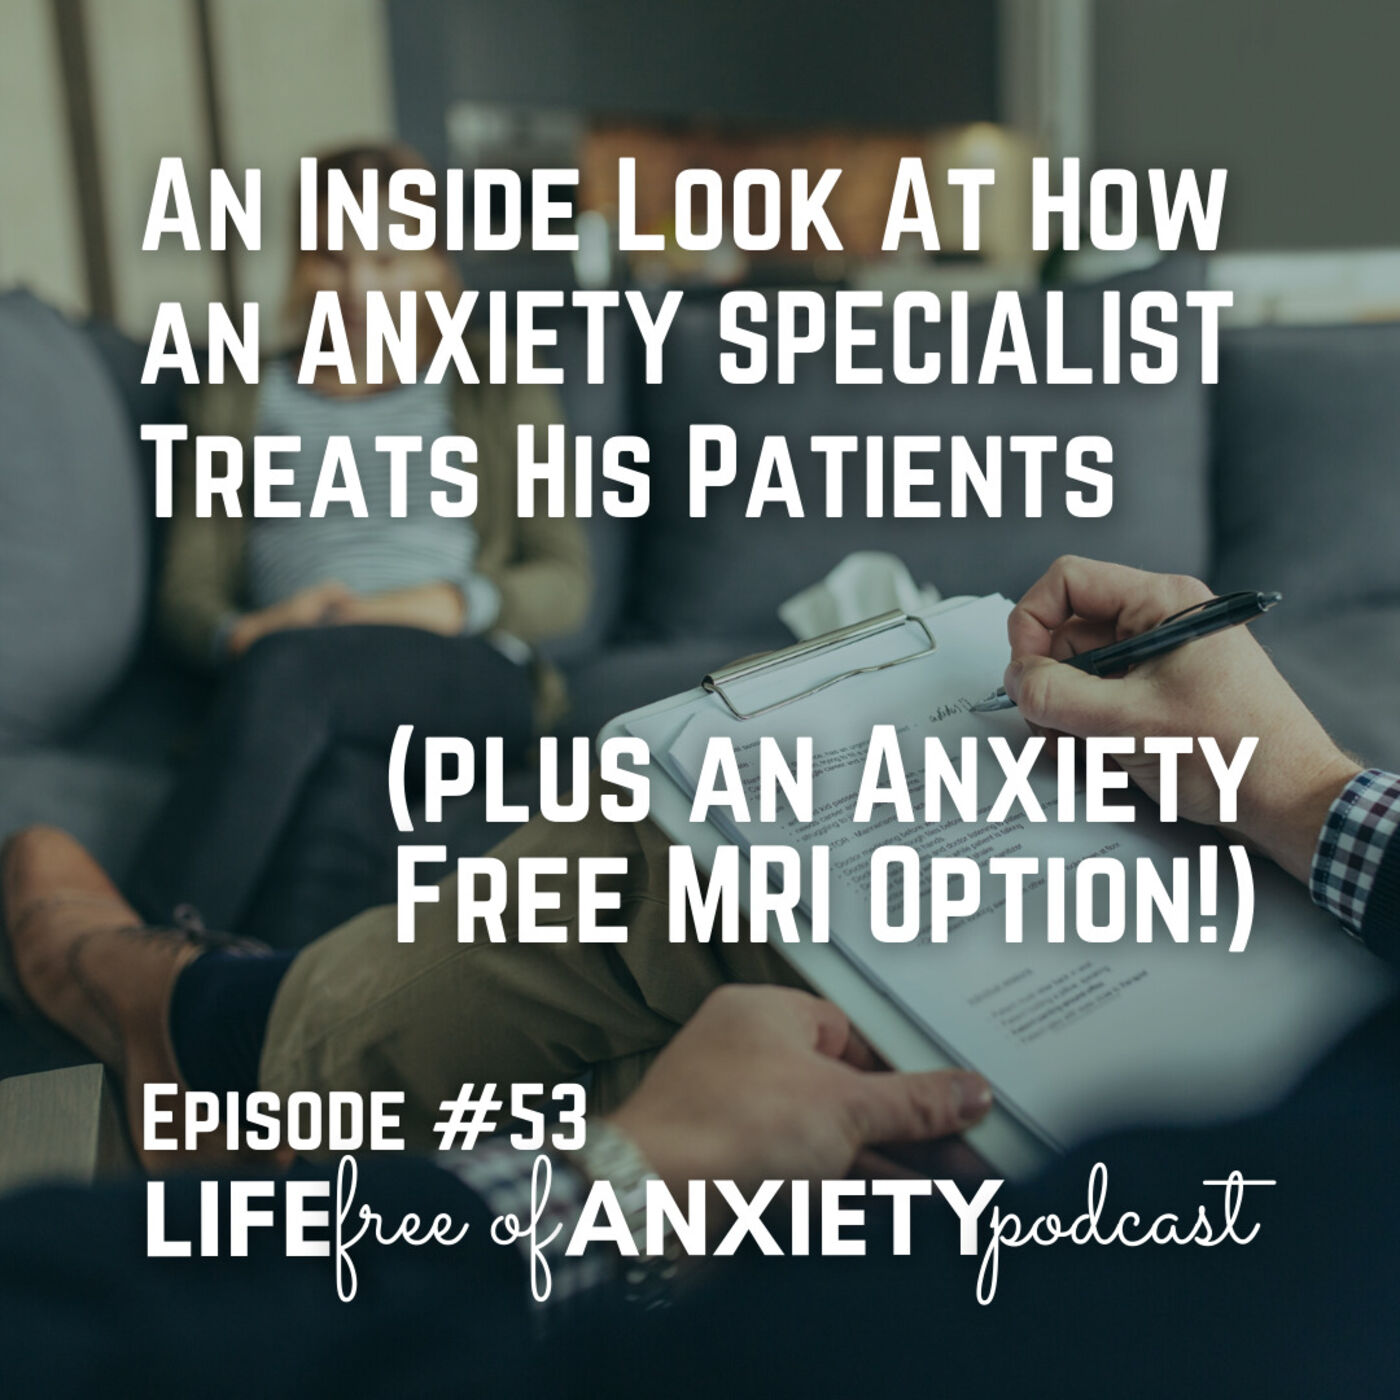 E053 - An inside look at how an anxiety specialist treats his patients (plus an anxiety free MRI option)